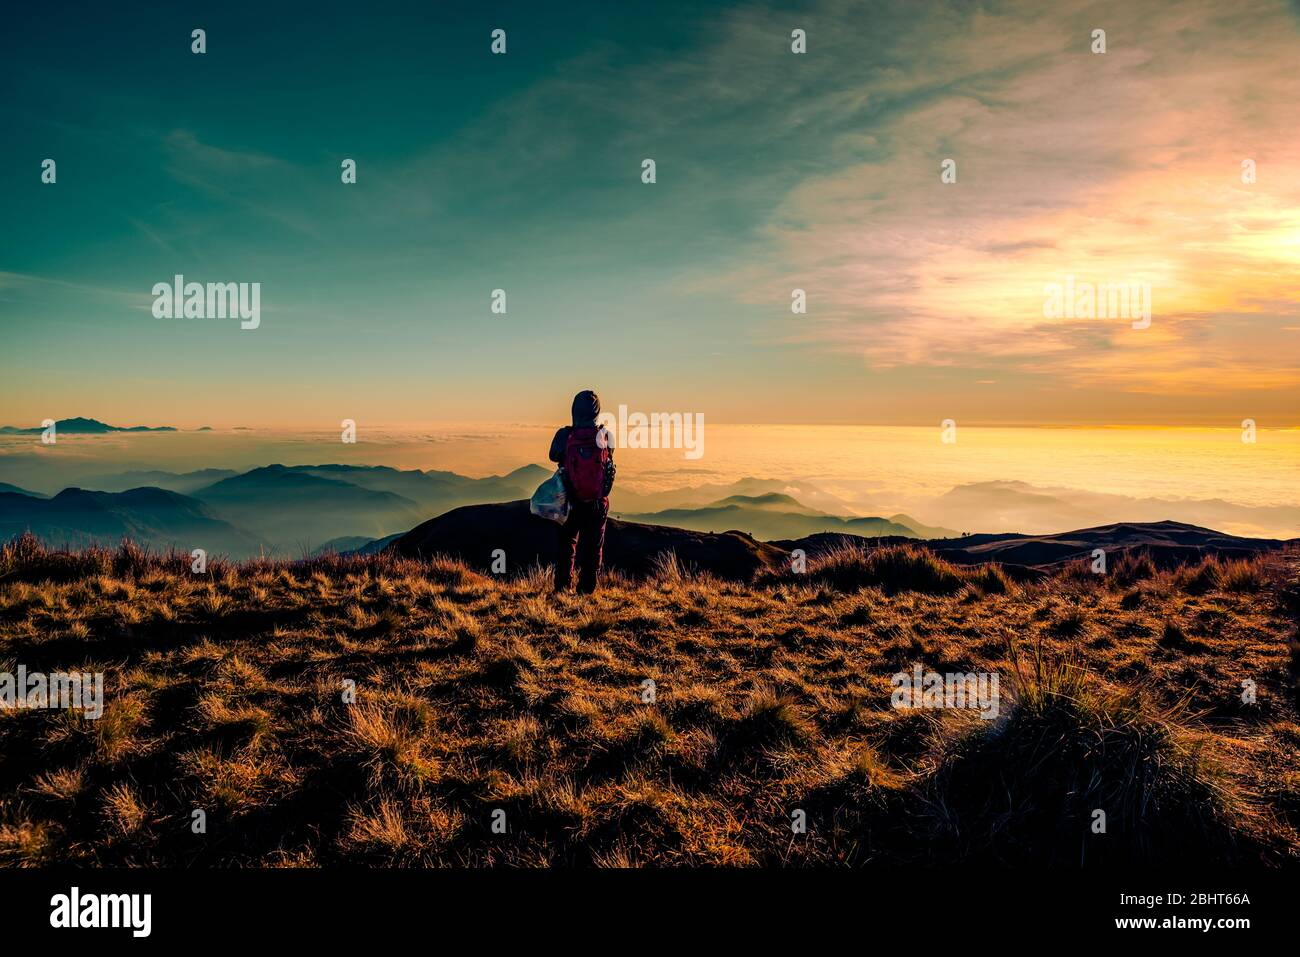 An adult mountainer standing at the peak of Mt. Pulag enjoying the breathtaking view of sea of clouds during sunrise. Stock Photo